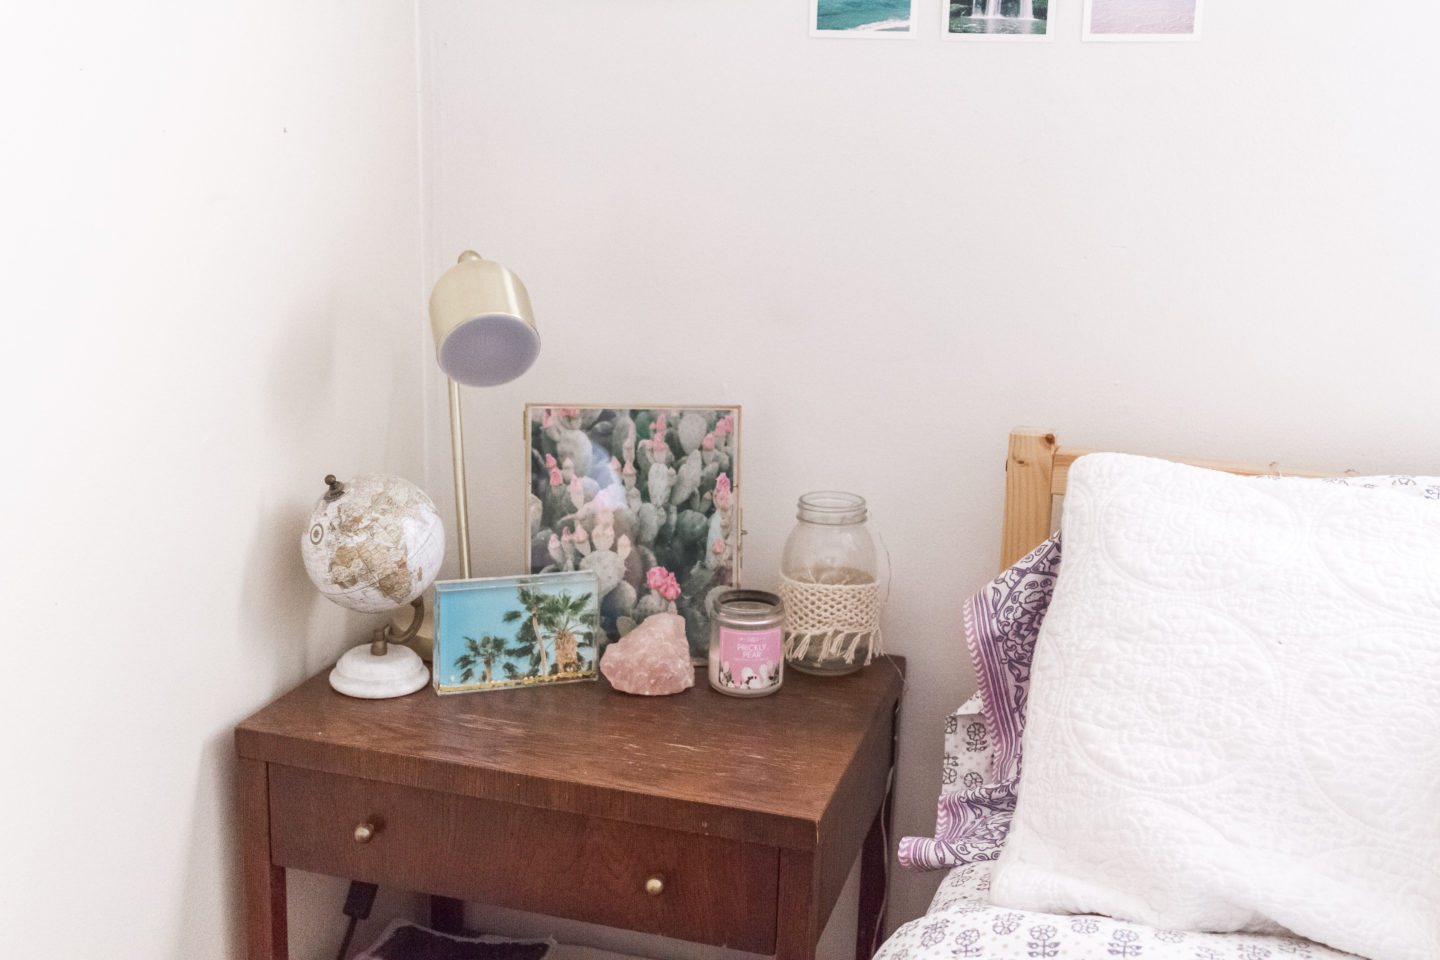 bedside table styling, bright boho chic bedroom #mypbteen #sponsored